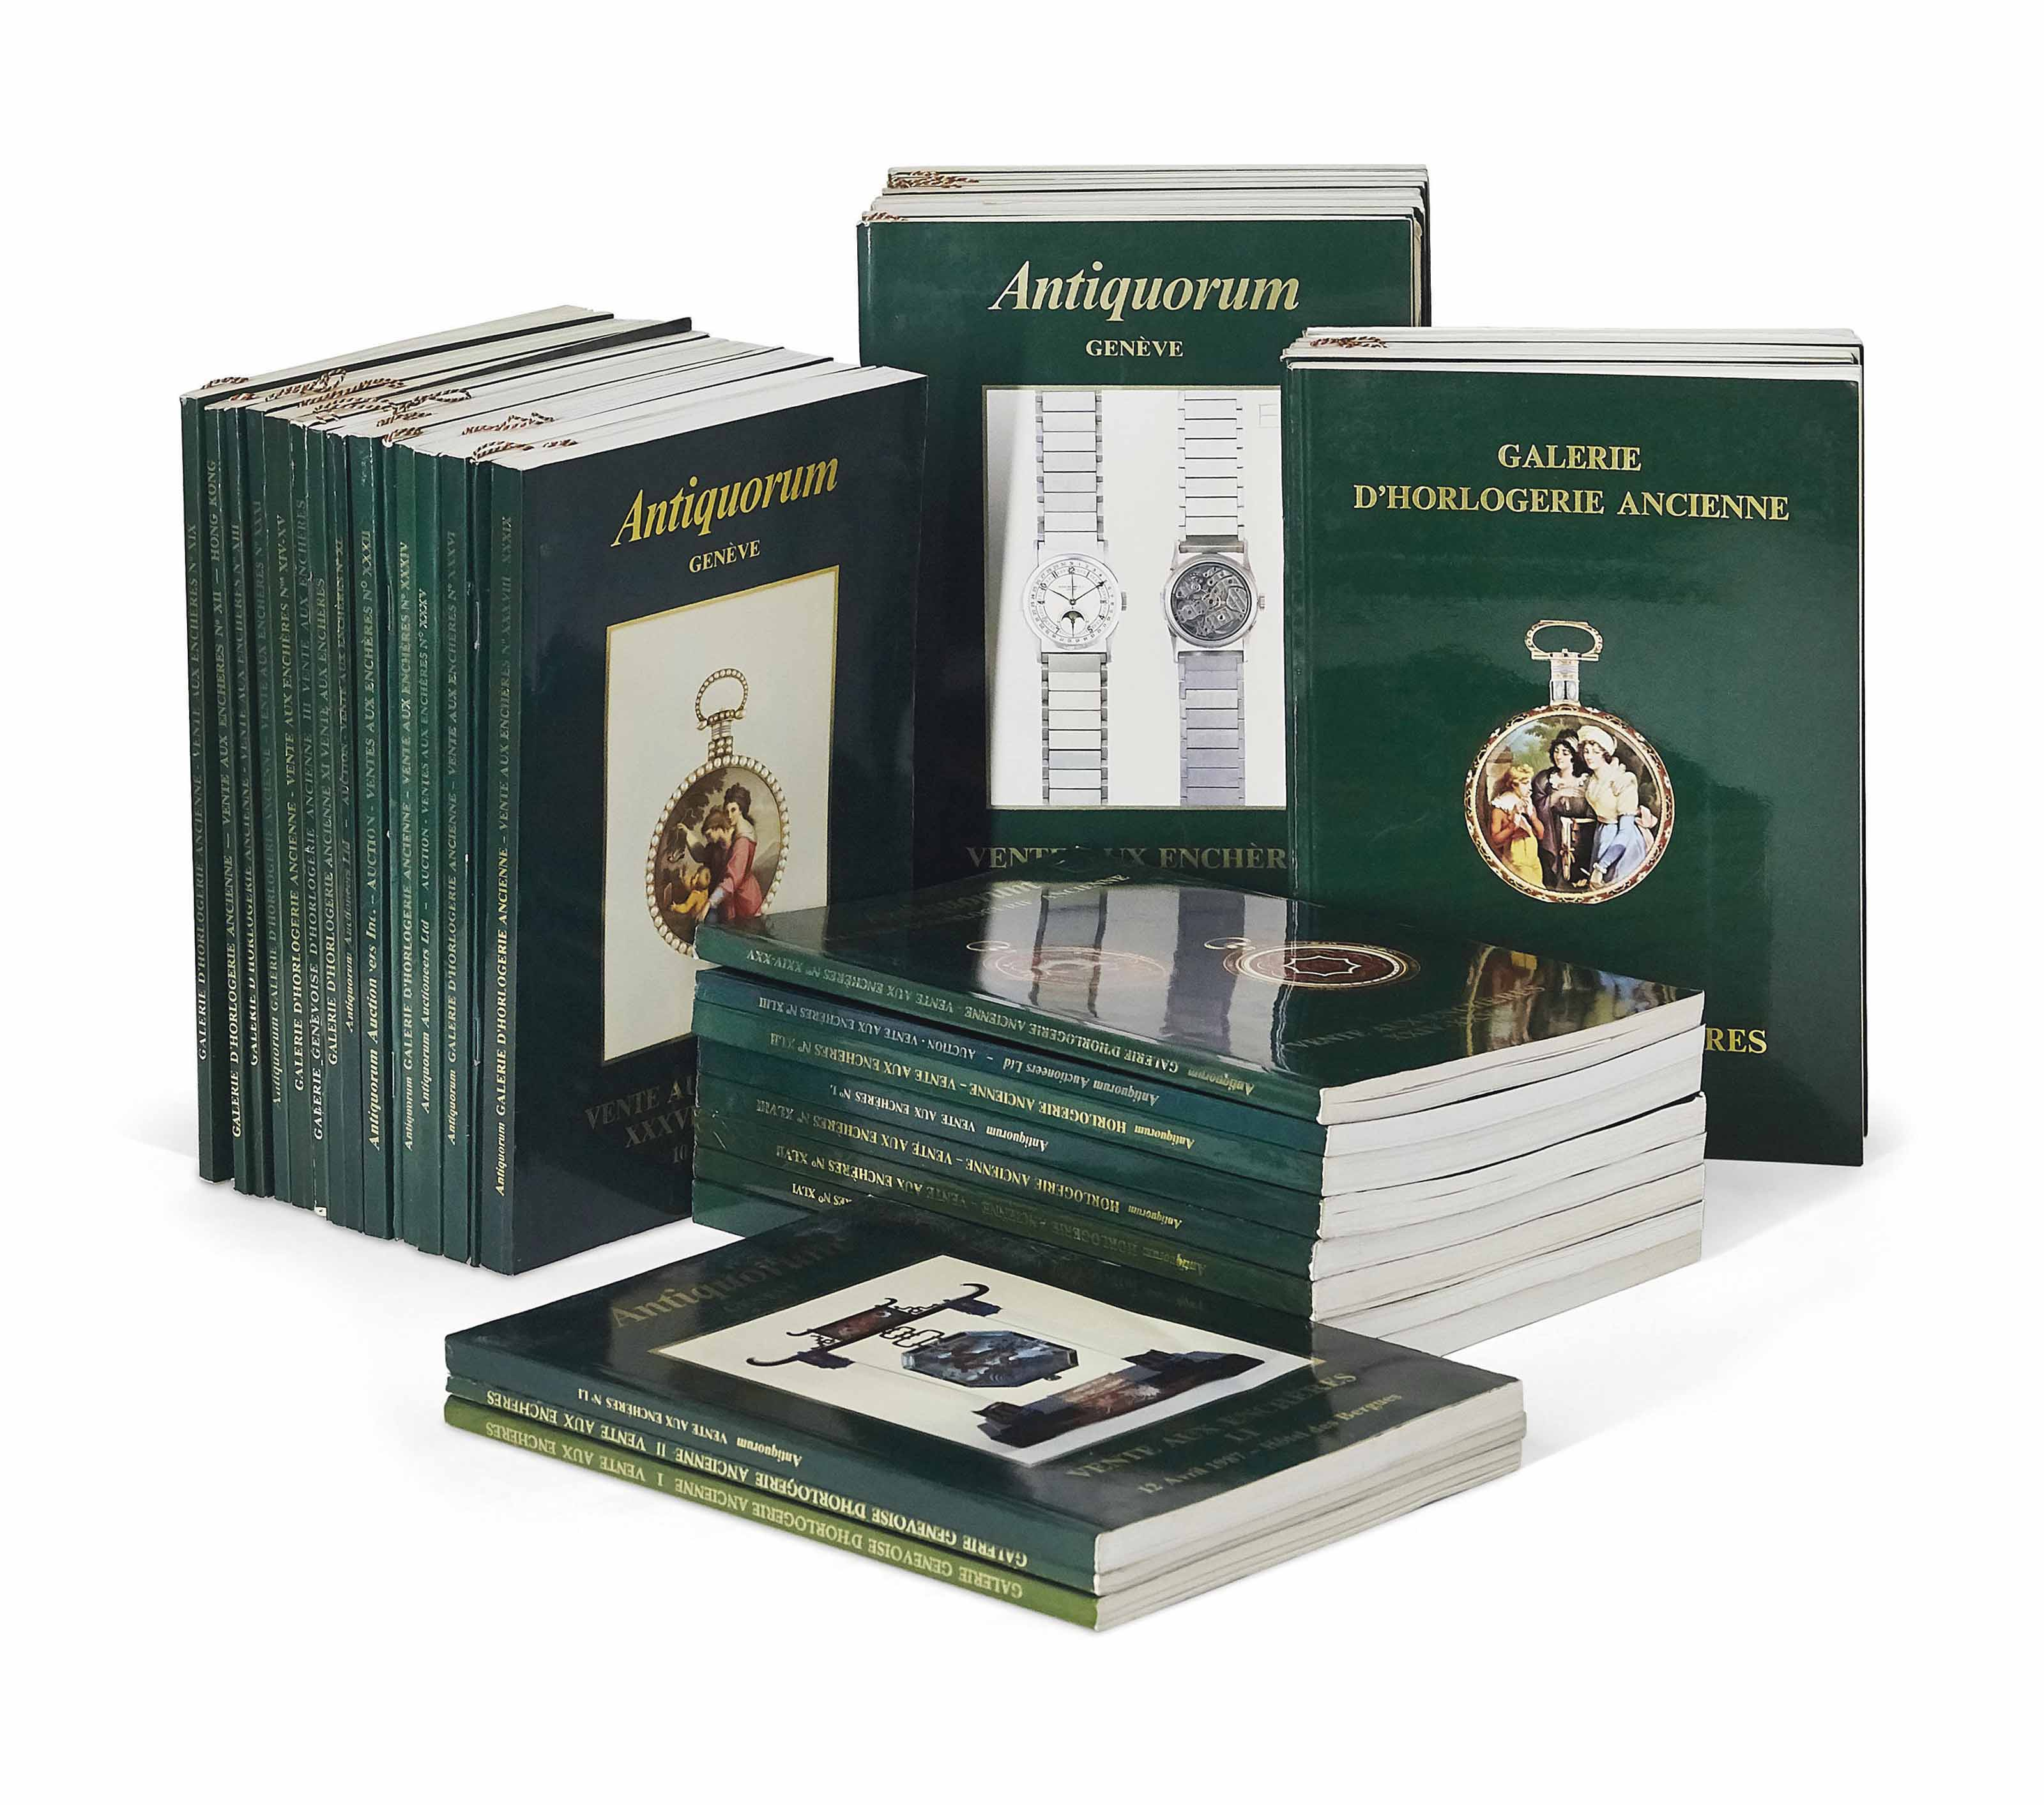 Early Antiquorum and Galerie d'Horlogerie Ancienne catalogues in The Early Days of Vintage Wristwatch Collecting for A Collected Man London